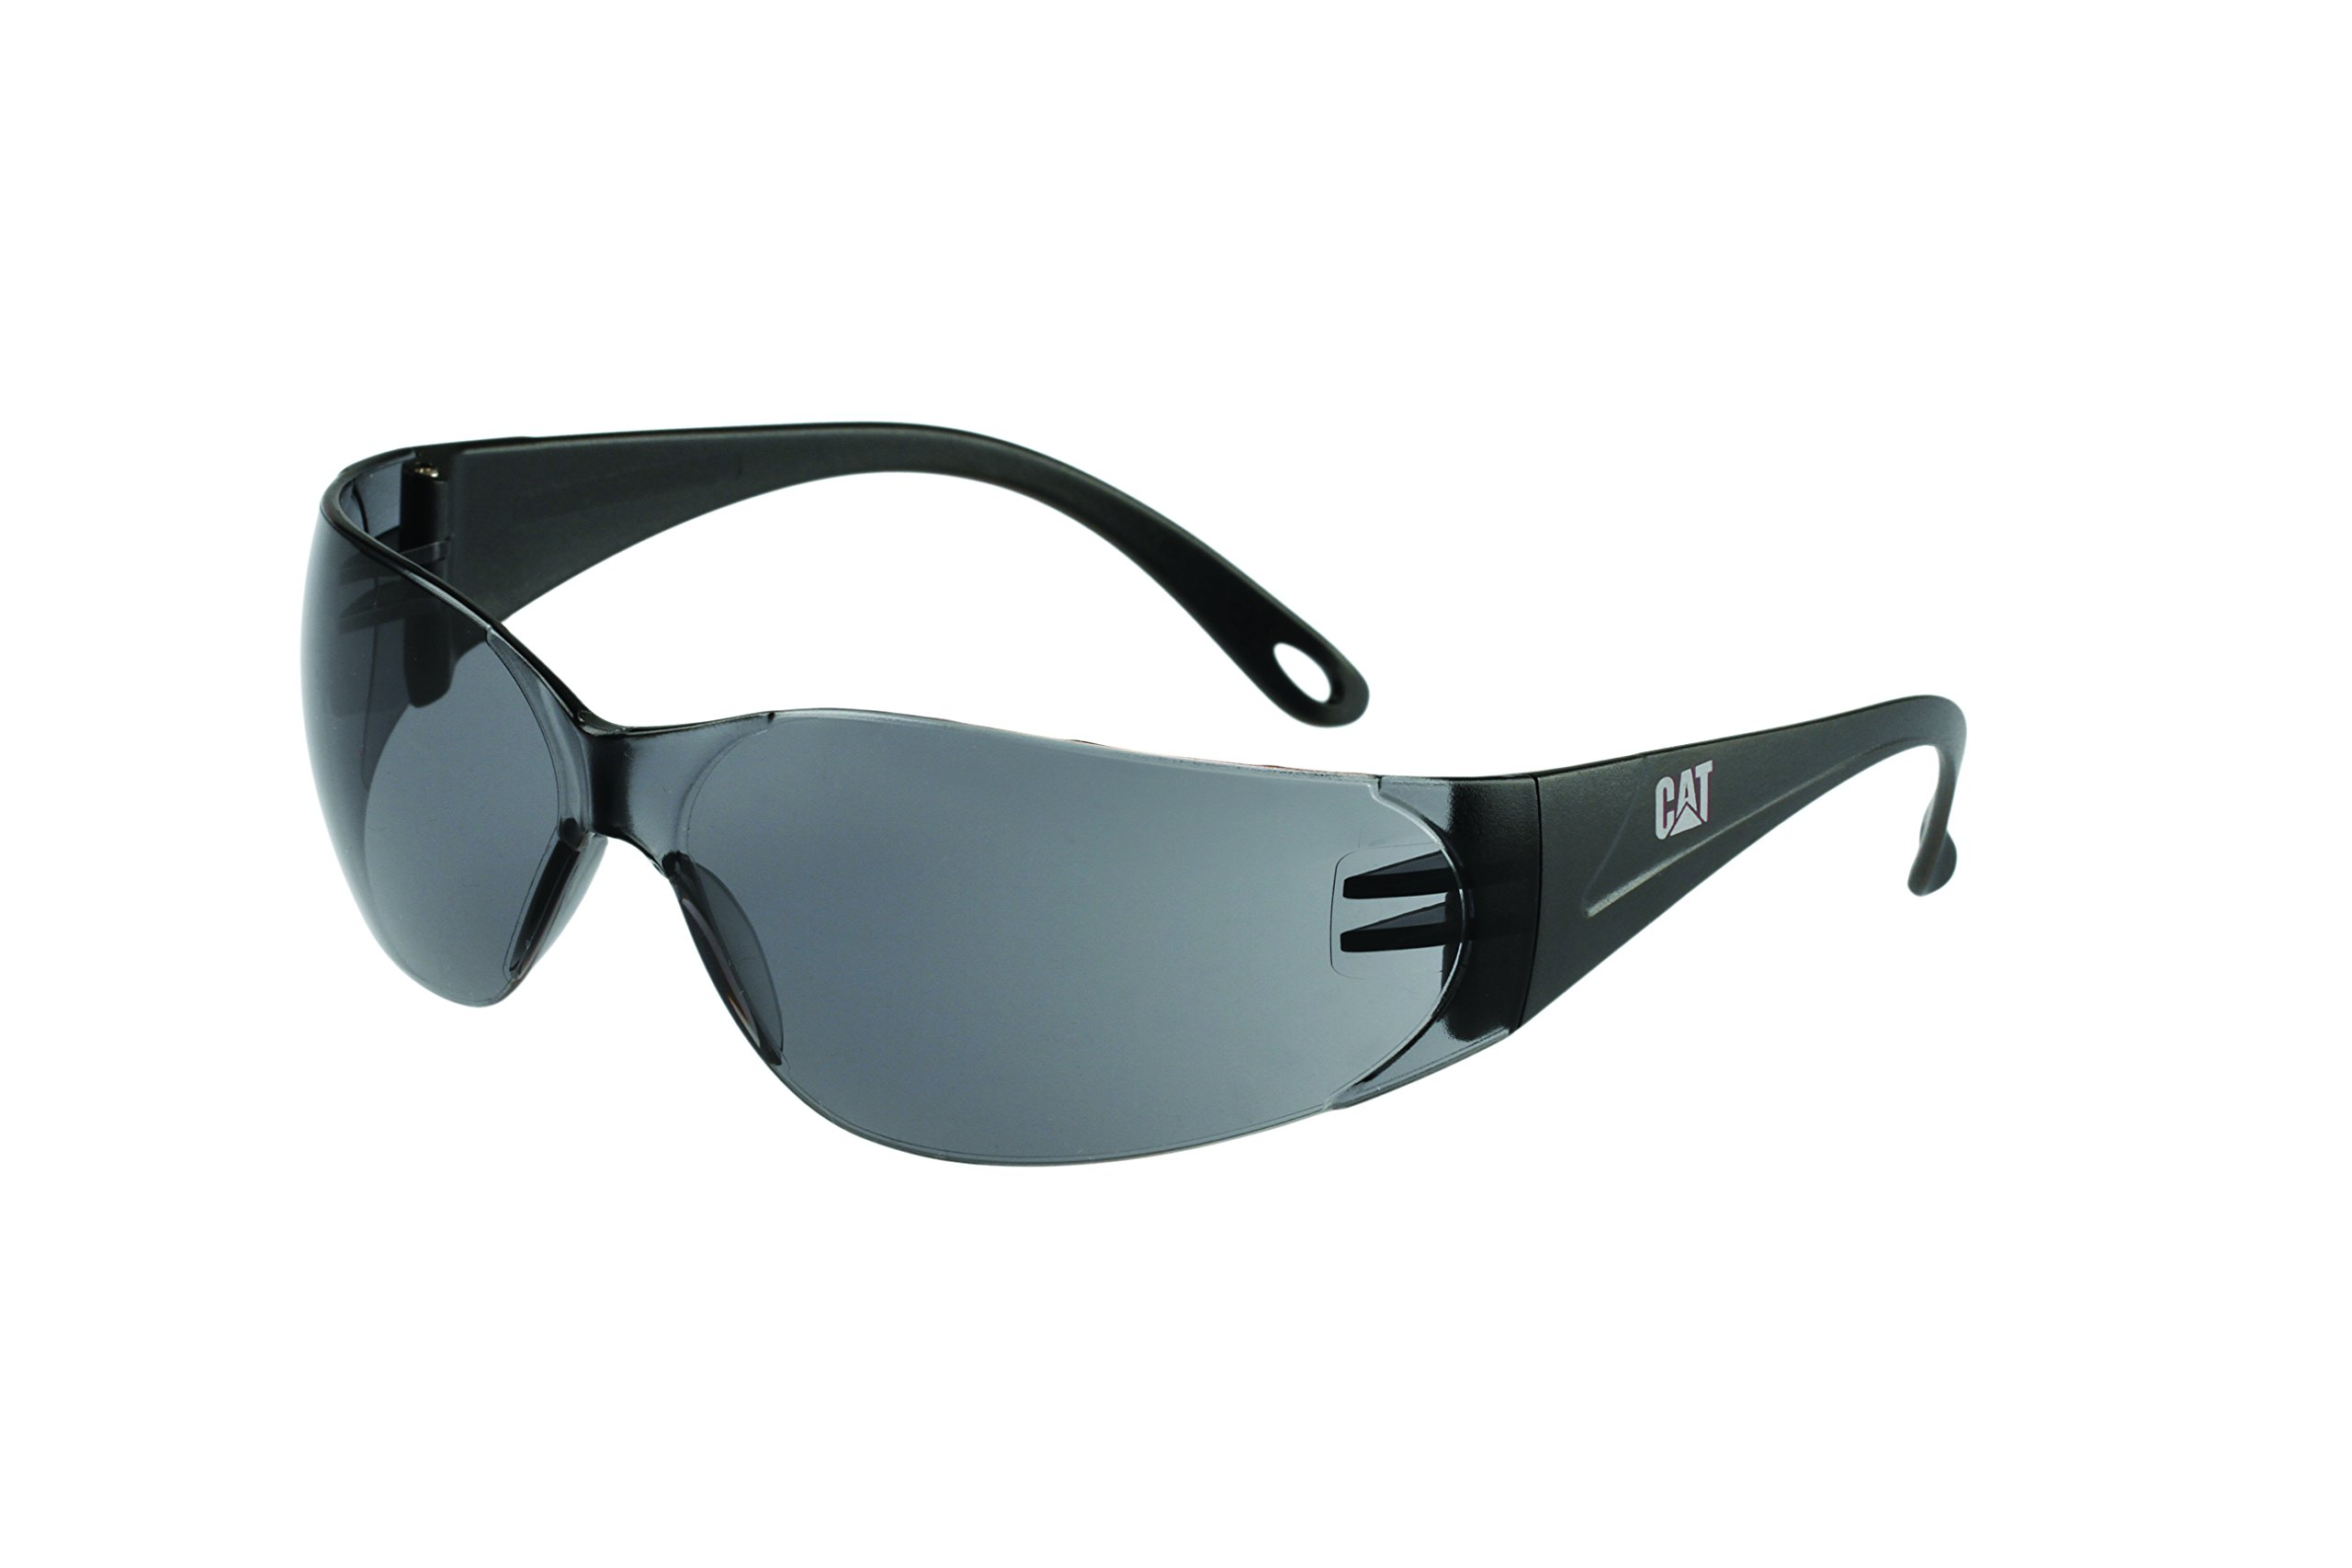 Caterpillar CSA-JET-104 Filter Category 2-1.4 Smoke Lens Safety Glasses, Small